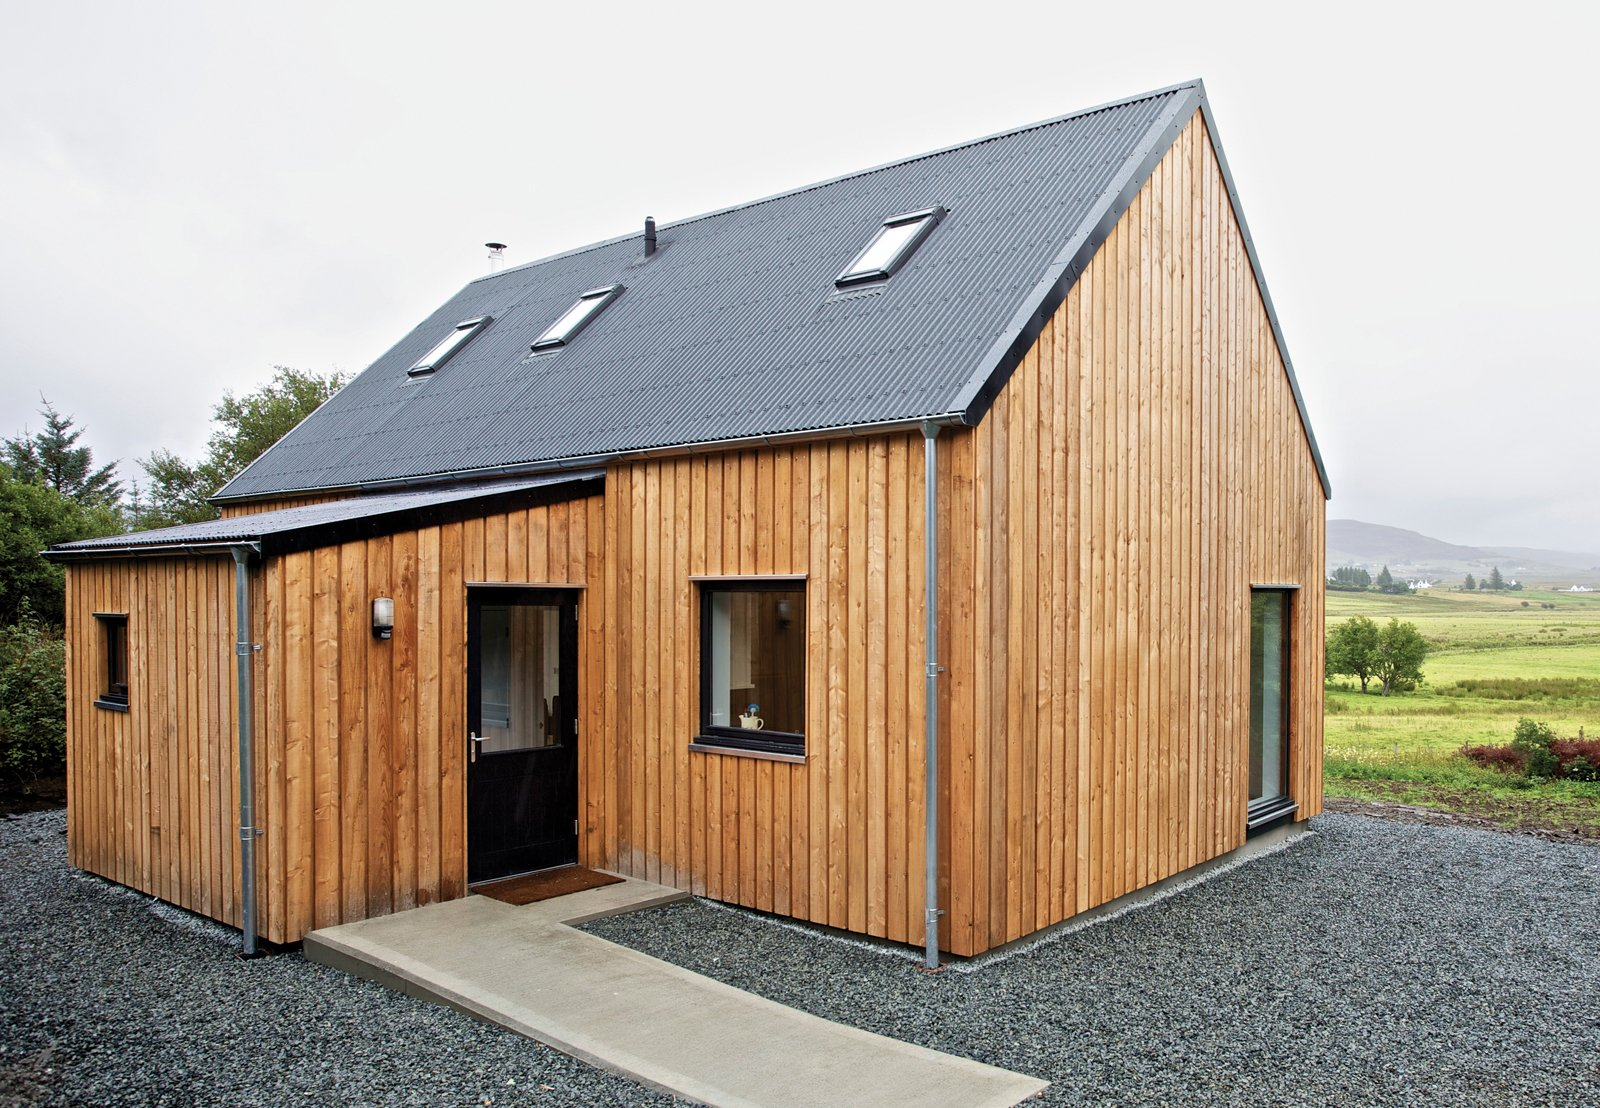 """""""It's a beautiful part of the world,"""" says architect Alan Dickson about Scotland's Isle of Skye. """"The downside of that beauty is that land is expensive and very difficult for young people to afford, so they're leaving the island."""" In 2010, Dickson, of the Skye-based firm Rural Design, and local builder James MacQueen came up with a solution: a small timber-frame prefab design called the R.House, which can be constructed quickly and tucked onto less expensive lots that don't appeal to well-heeled holiday homeowners.  Photo by Marcus McAdam.  Sourcing Guide for Modern Prefab Companies in Europe by Kelsey Keith"""